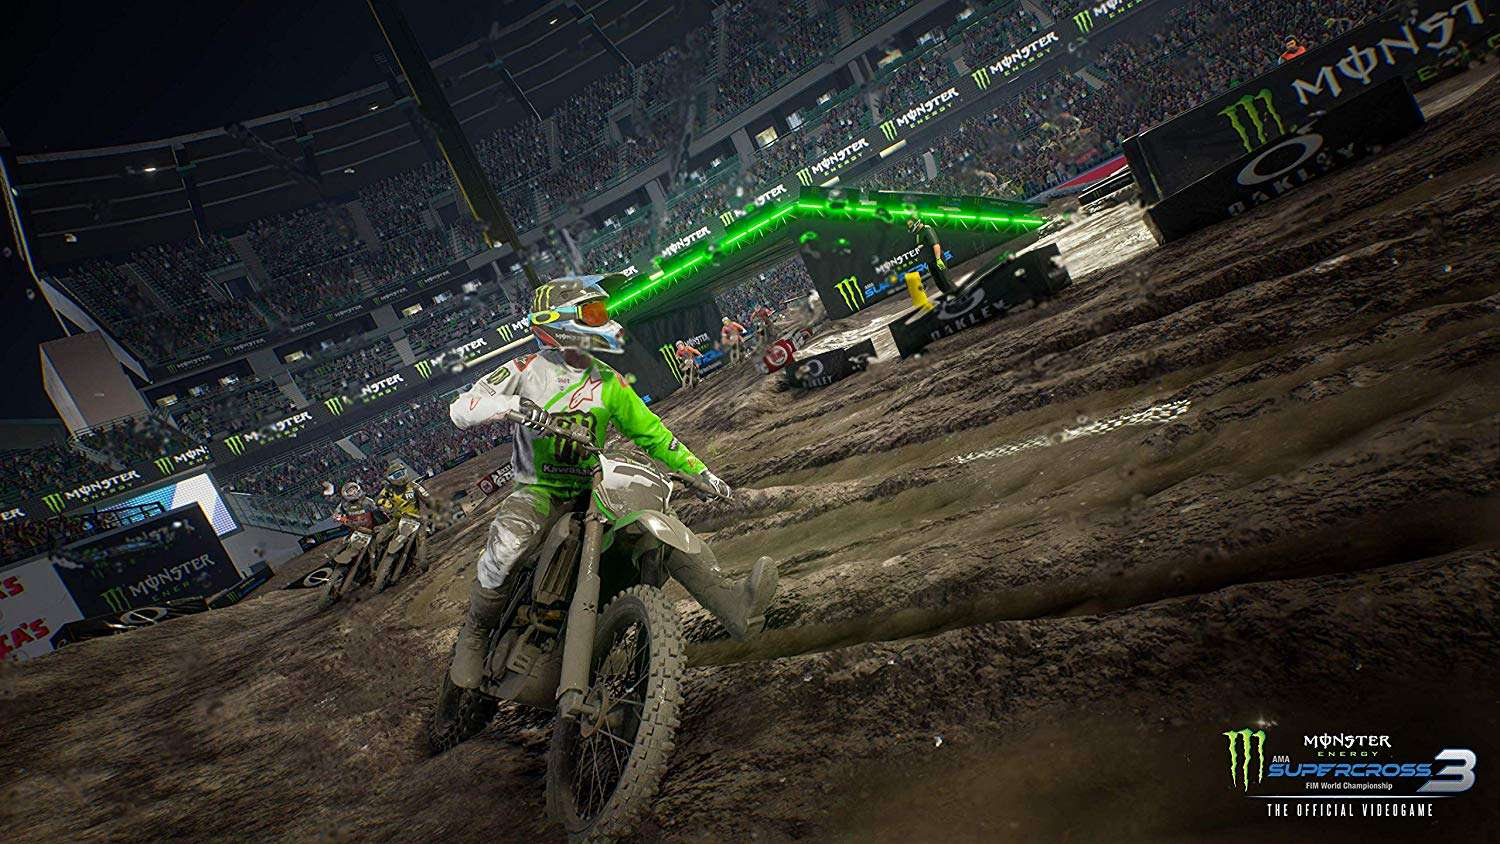 Monster Energy Supercross: The Official Videogame 3 #5